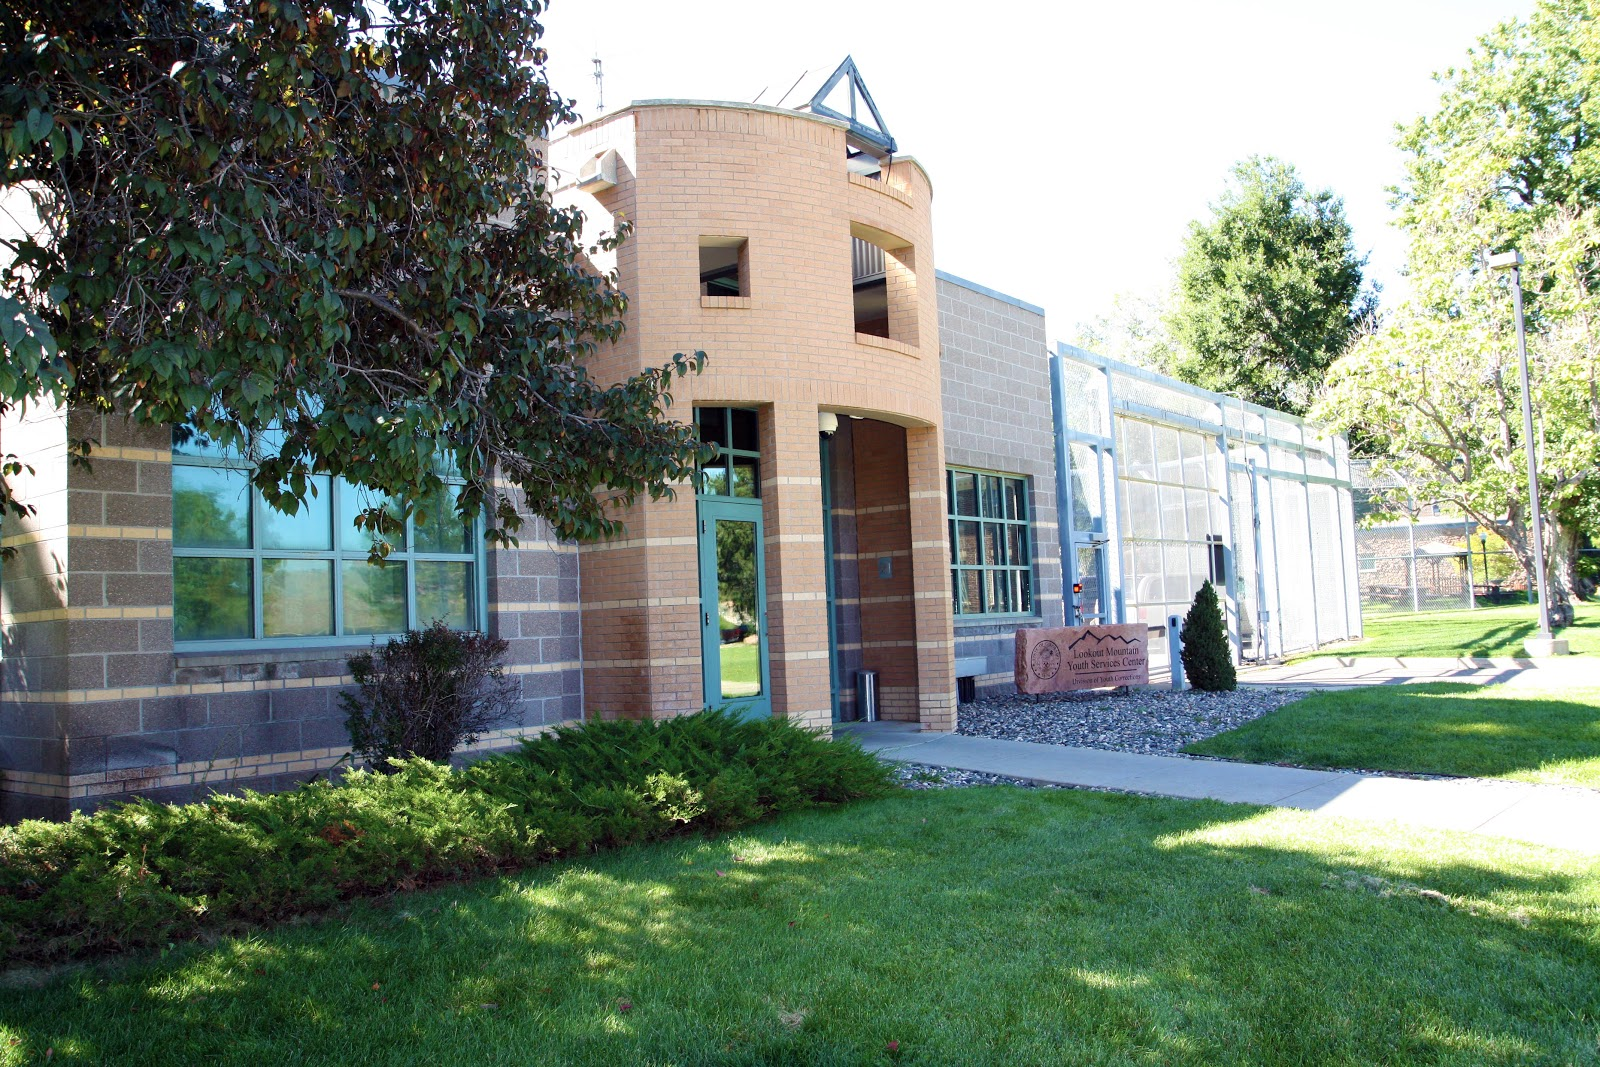 <p>Lookout Mountain Youth Services Center (LMYSC), located in Golden Colorado, is an intensive secure treatment program for 140 male juvenile offenders.</p>